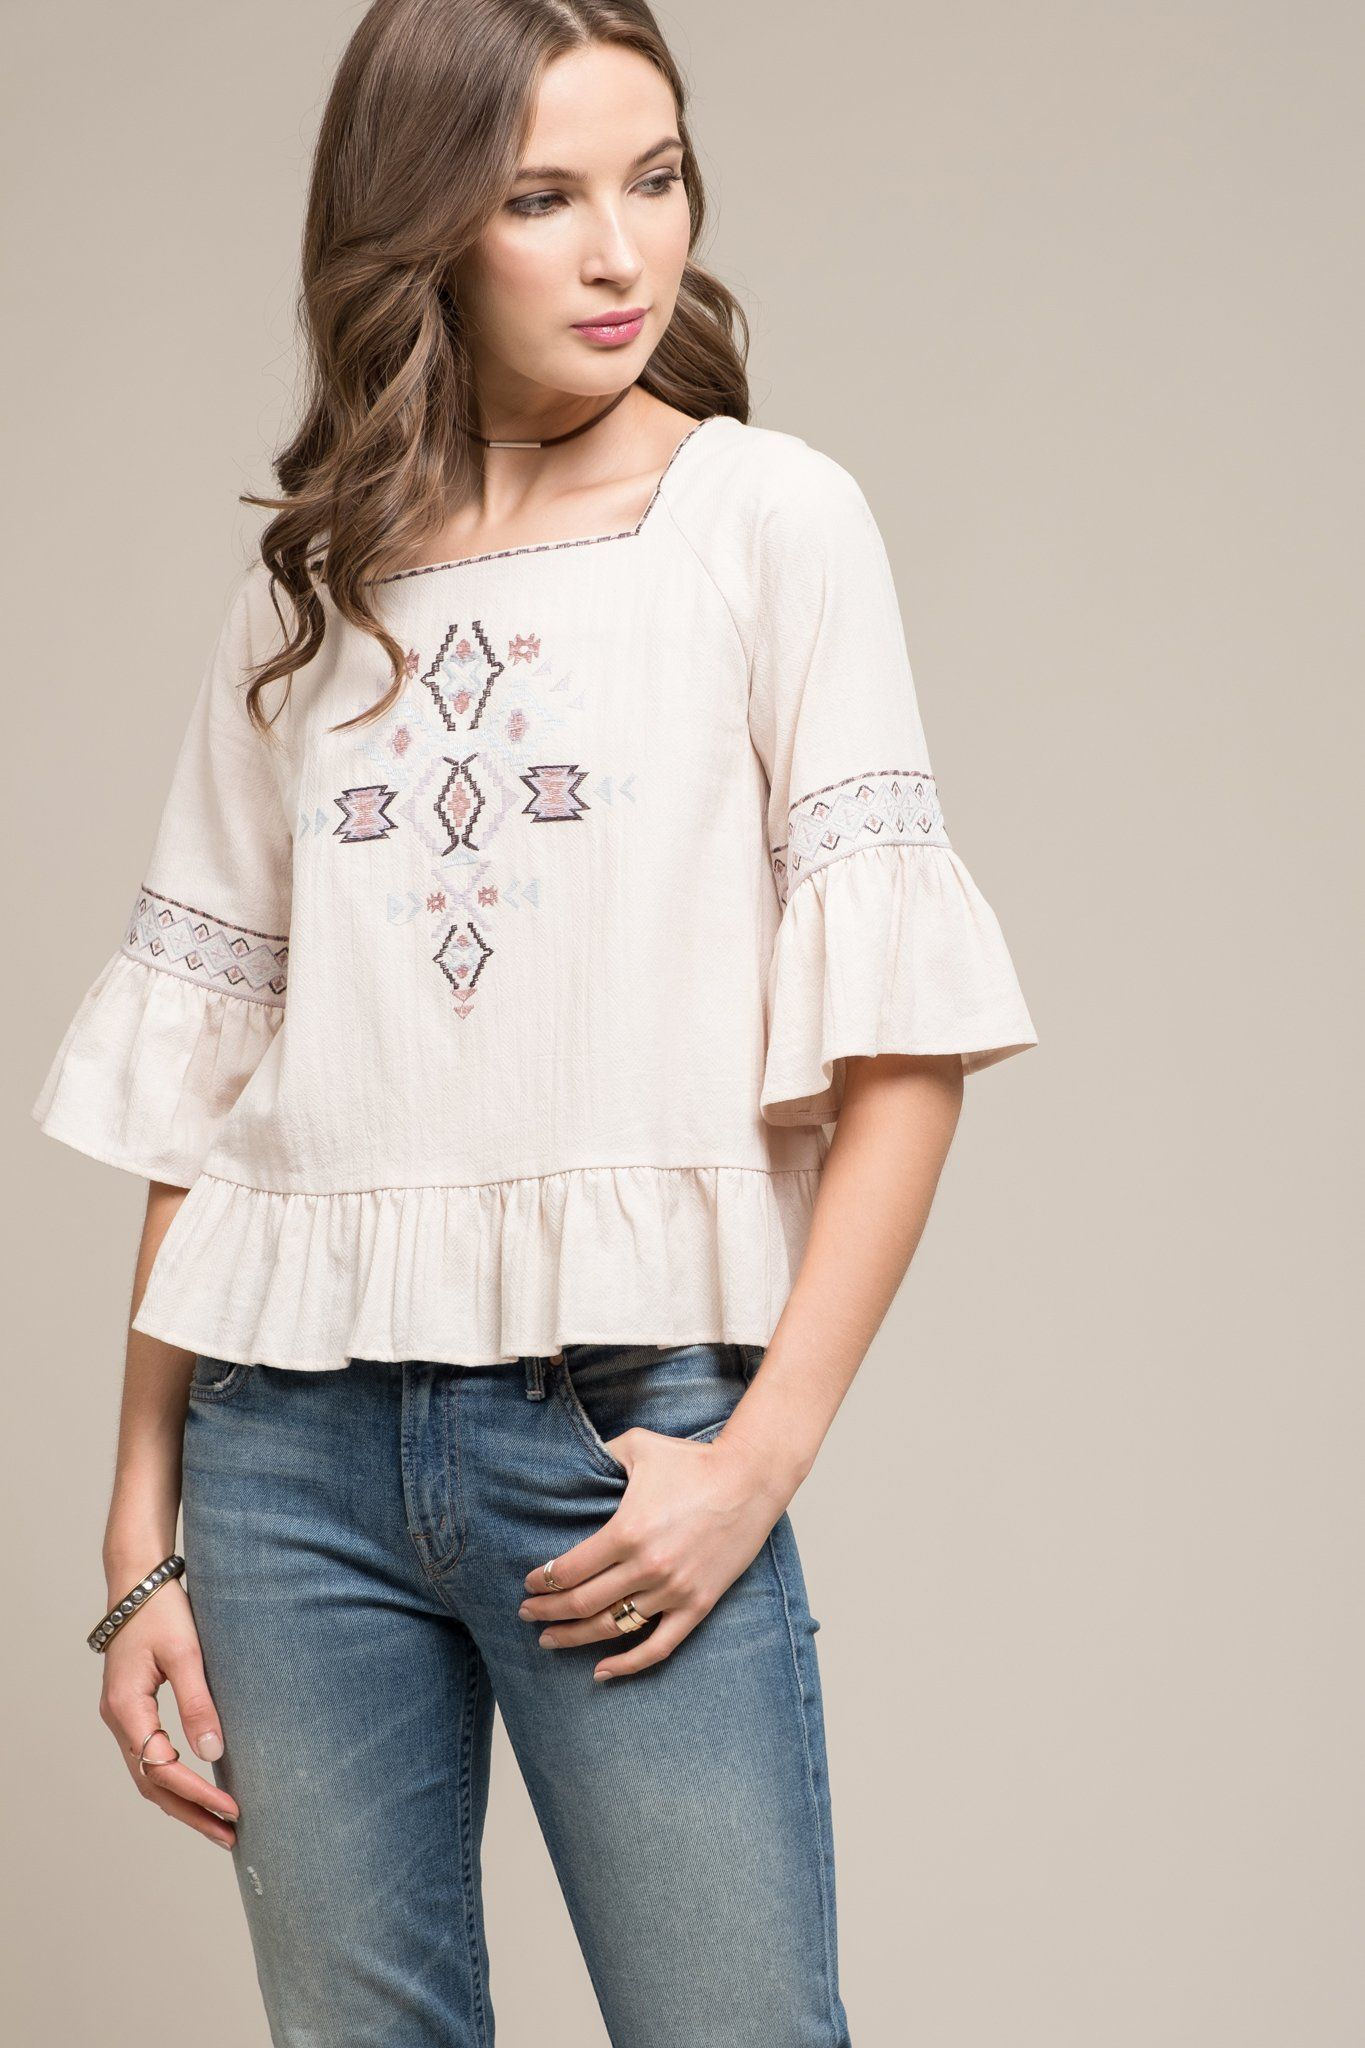 ca87752d64b382 EMBROIDERED 3 4 RUFFLE SLEEVE TOP